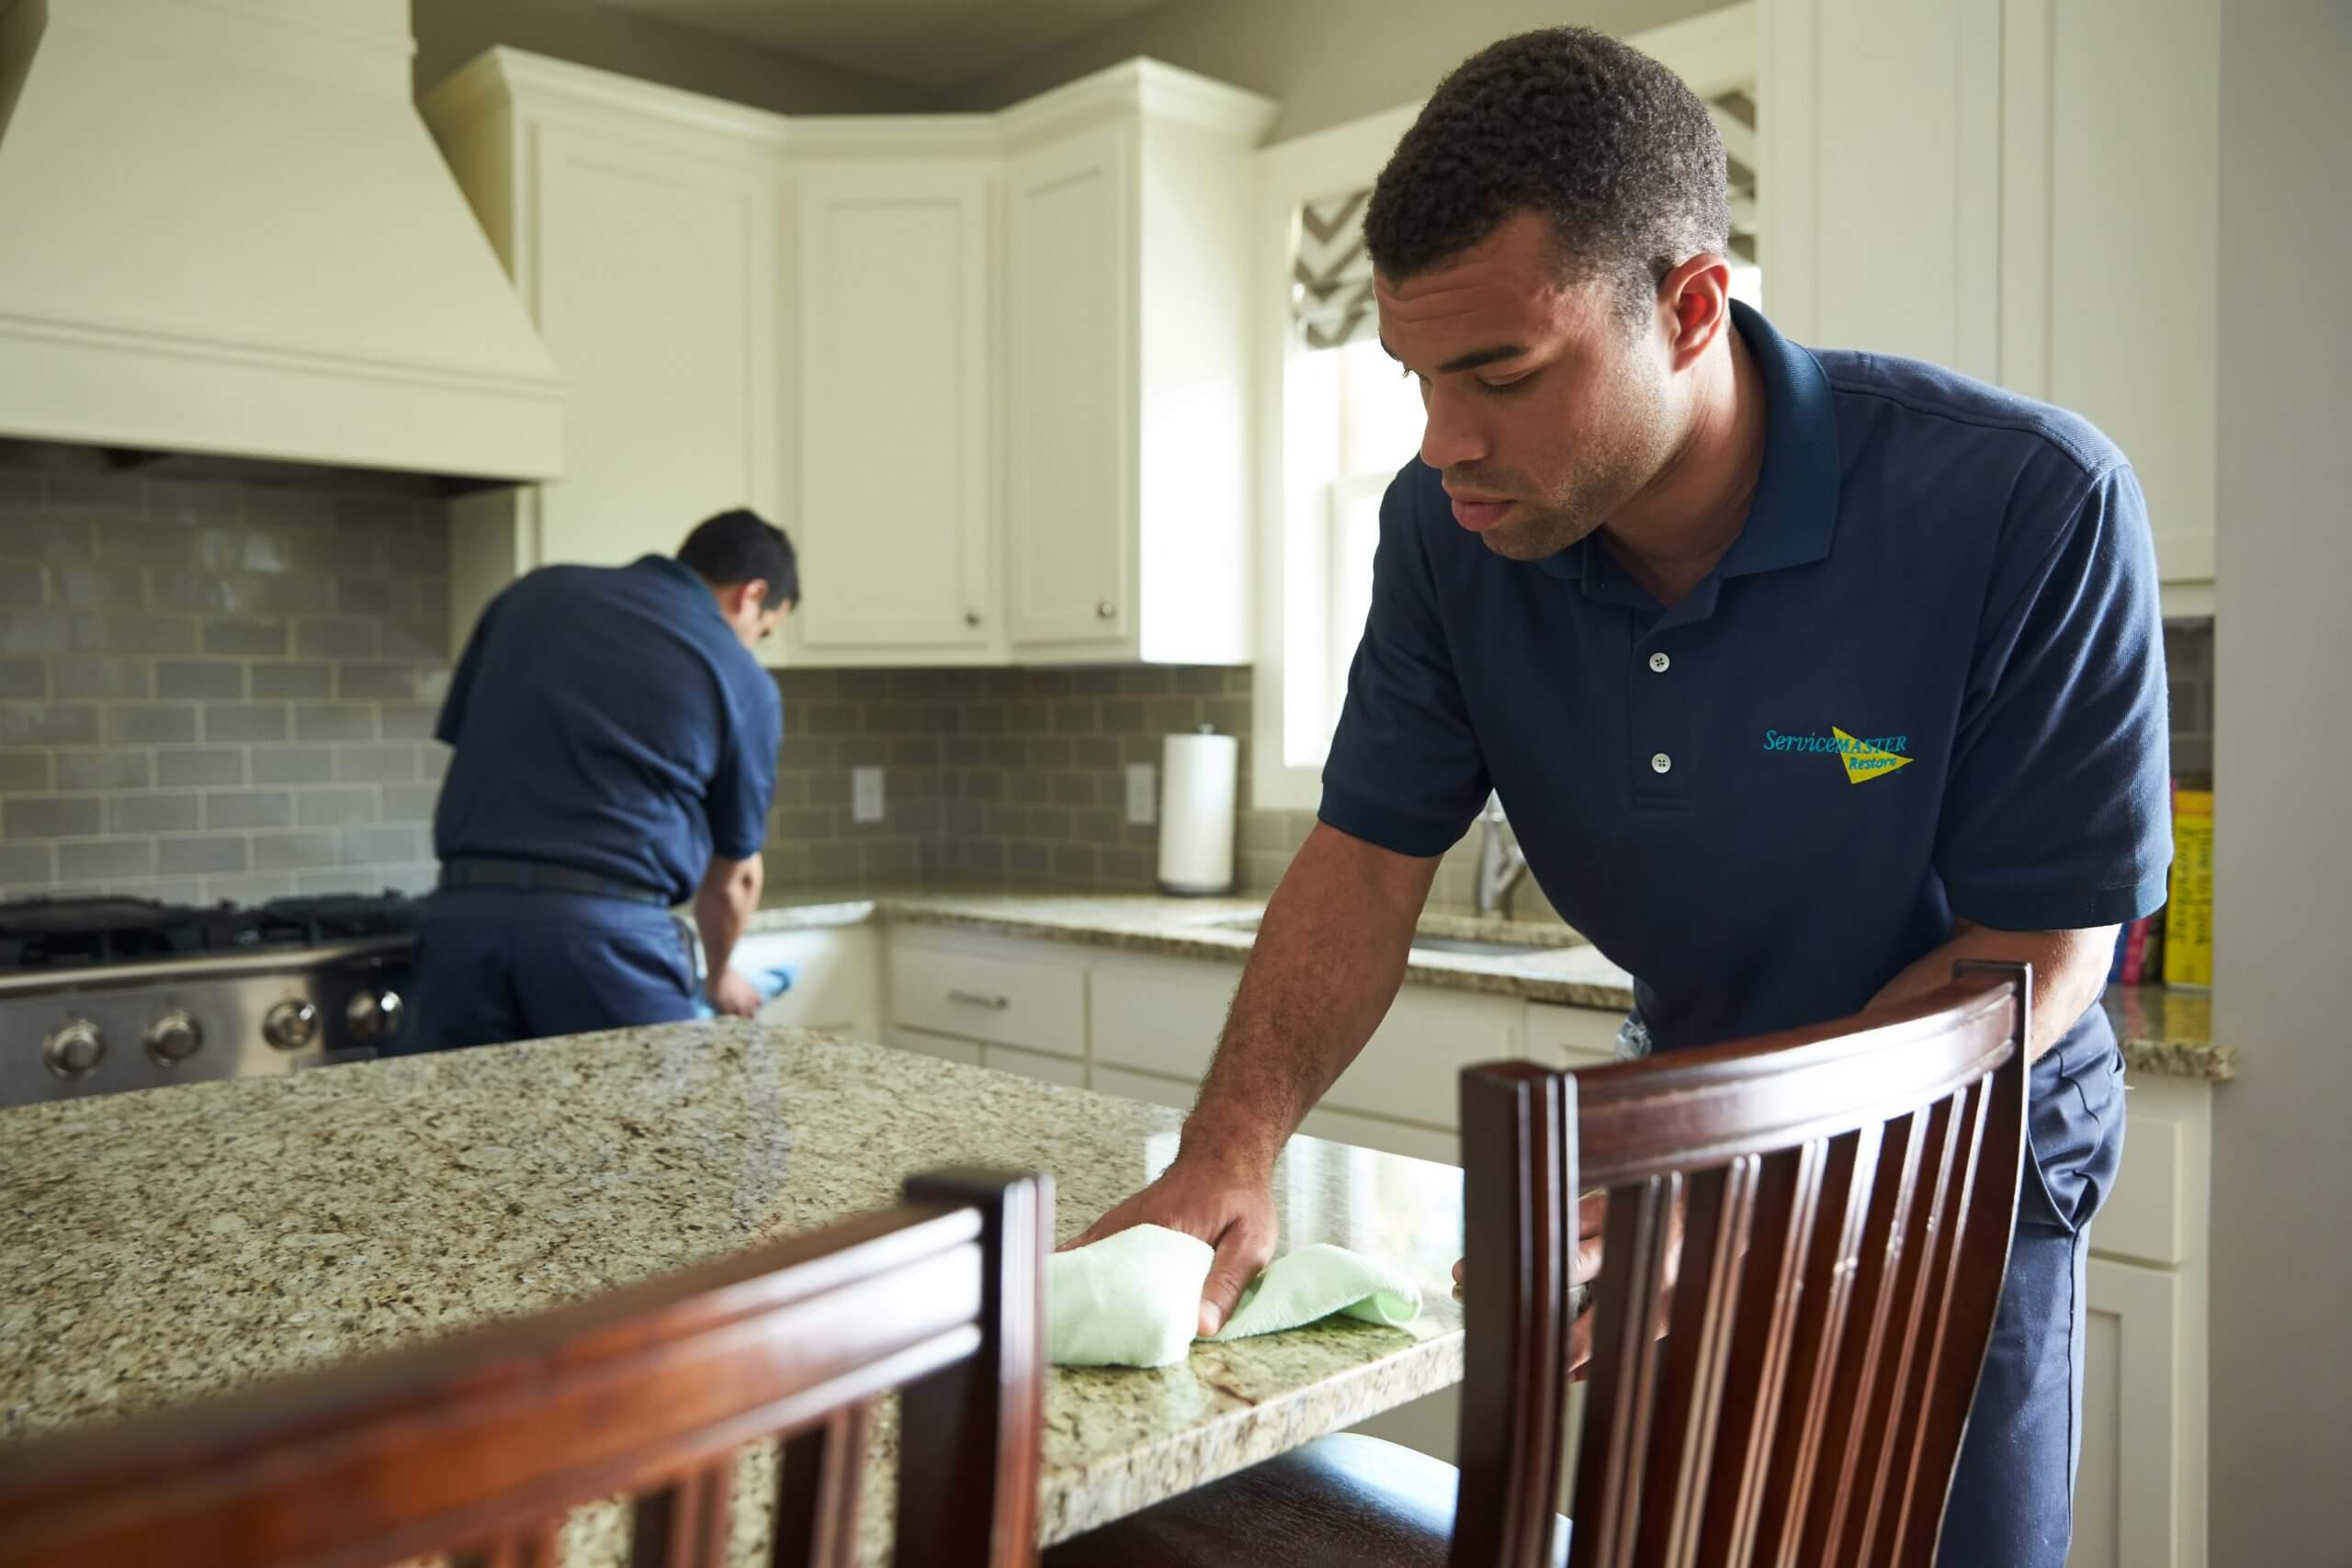 residential-water-damage-assesment-servicemaster-by-bailey